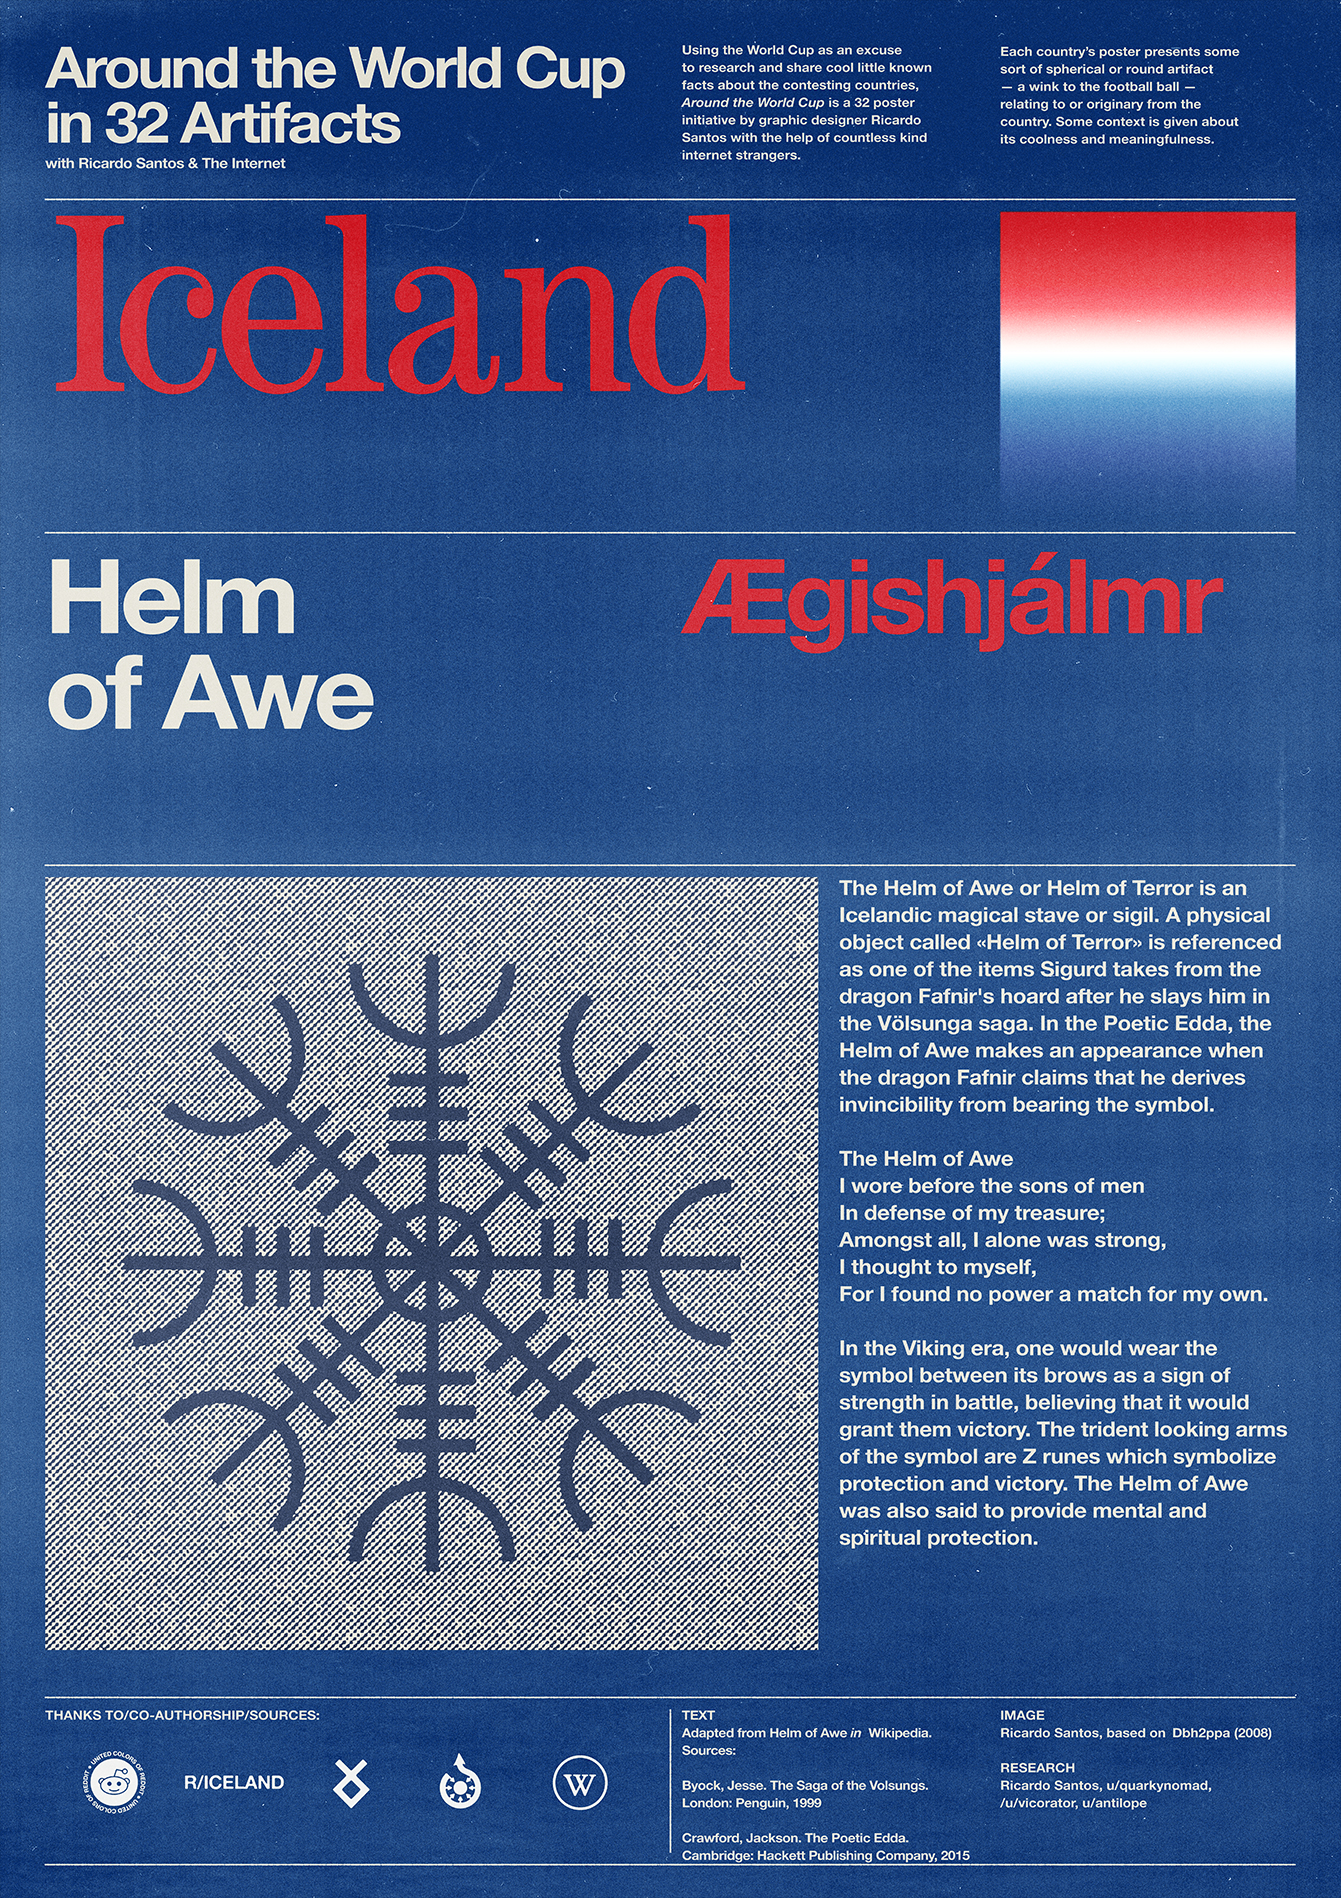 Iceland poster: Helm of Awe